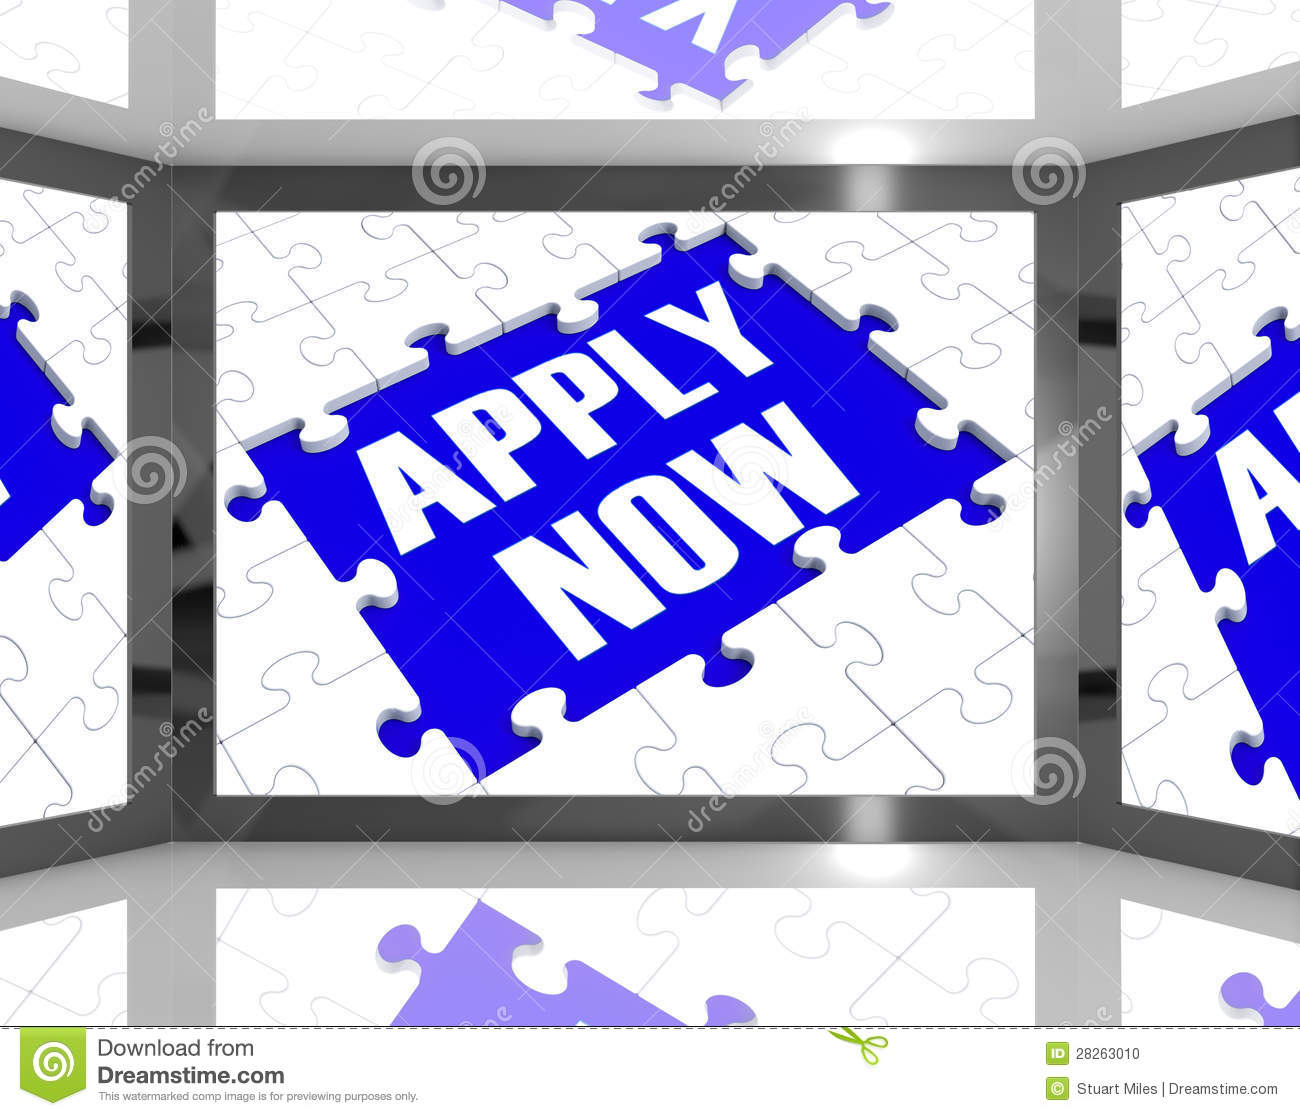 Apply Now On Screen Showing Job Recruitment Stock Photo   Image